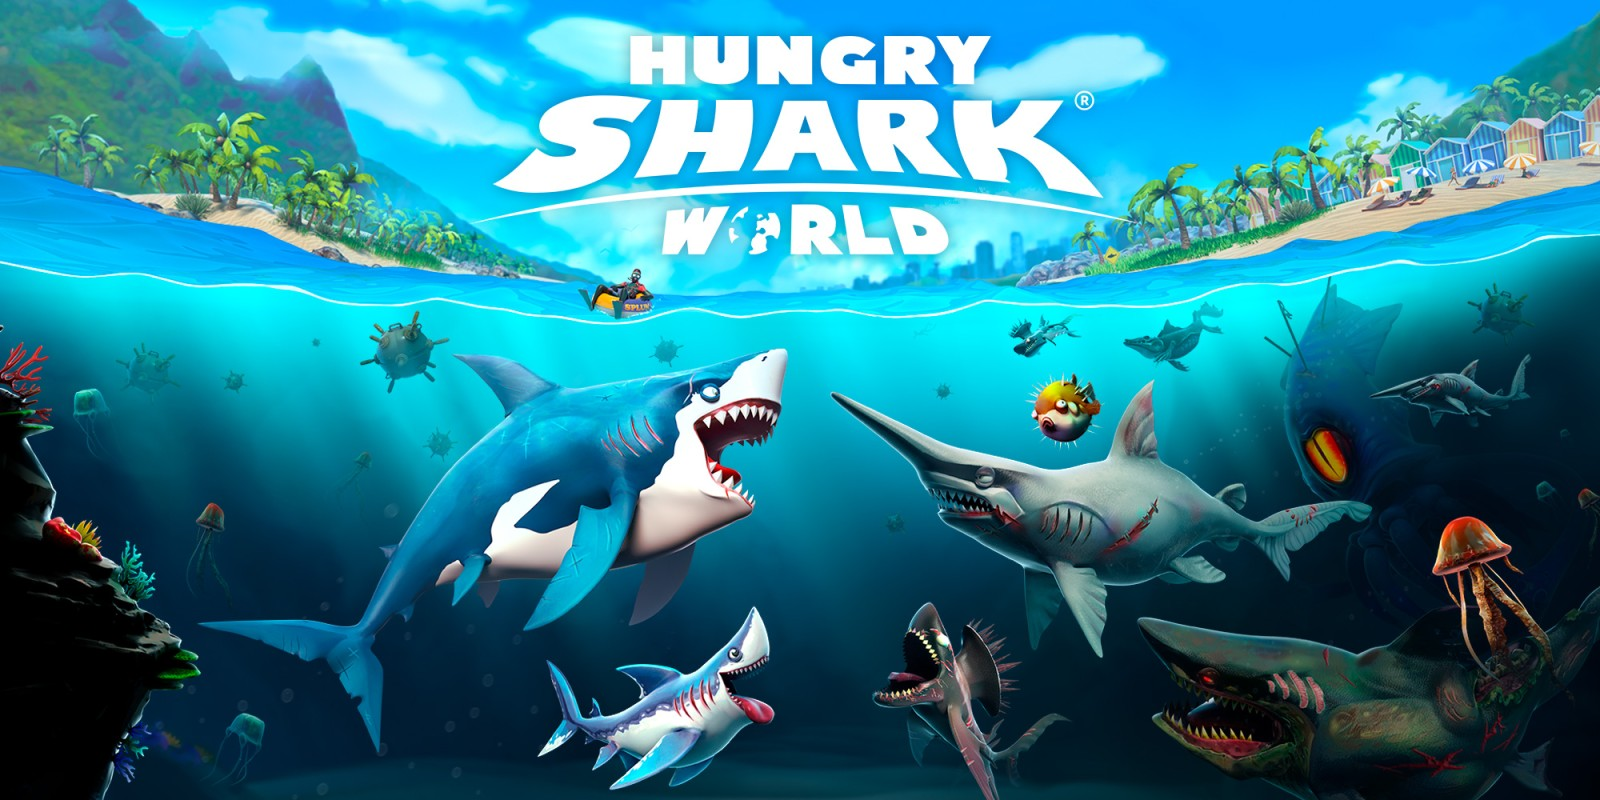 Hungry Shark World - mobiles Arcade-Spiel